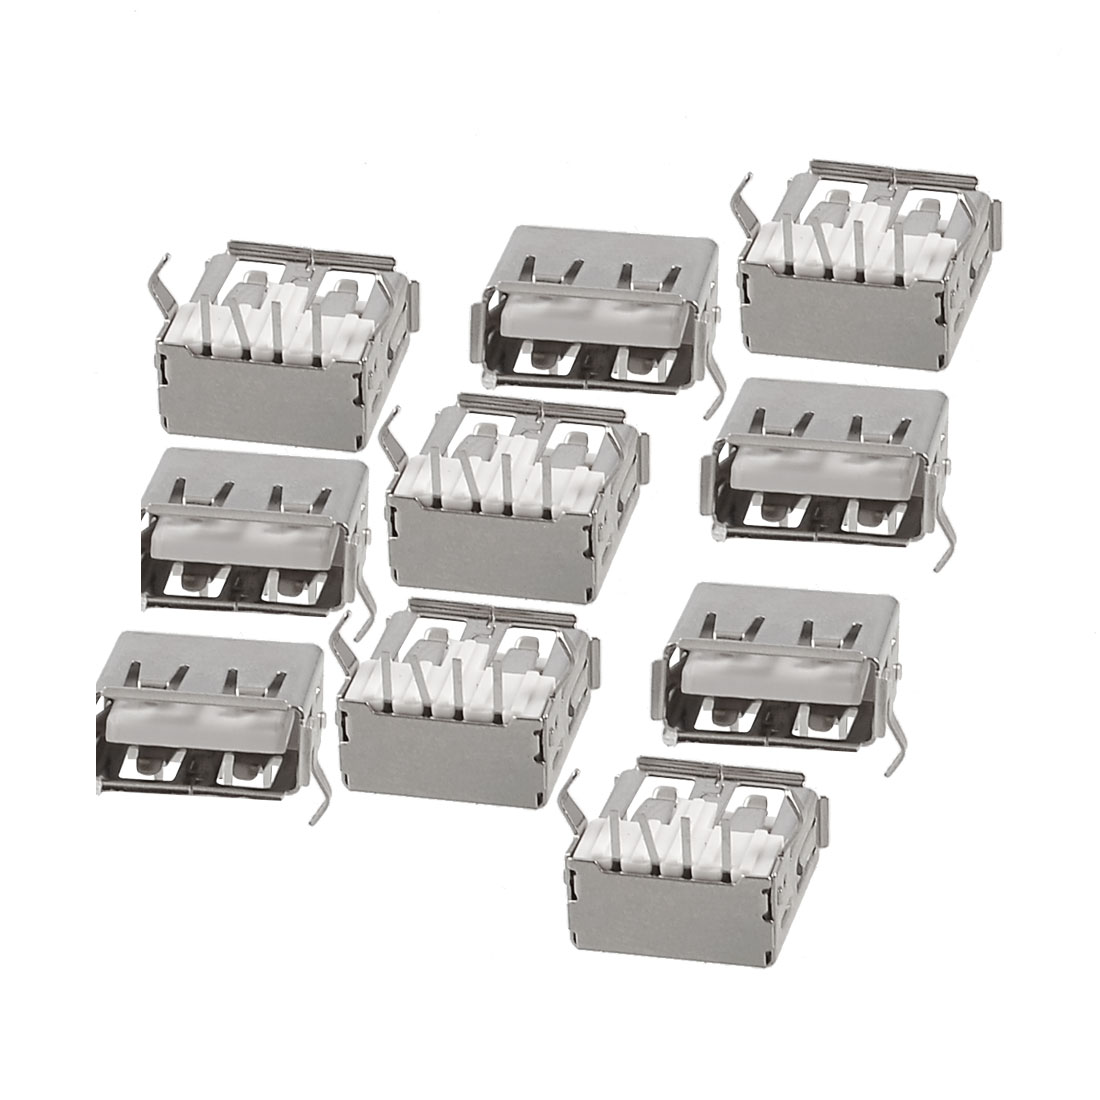 10 Pcs USB A Female Jack Sink Board Type Connector